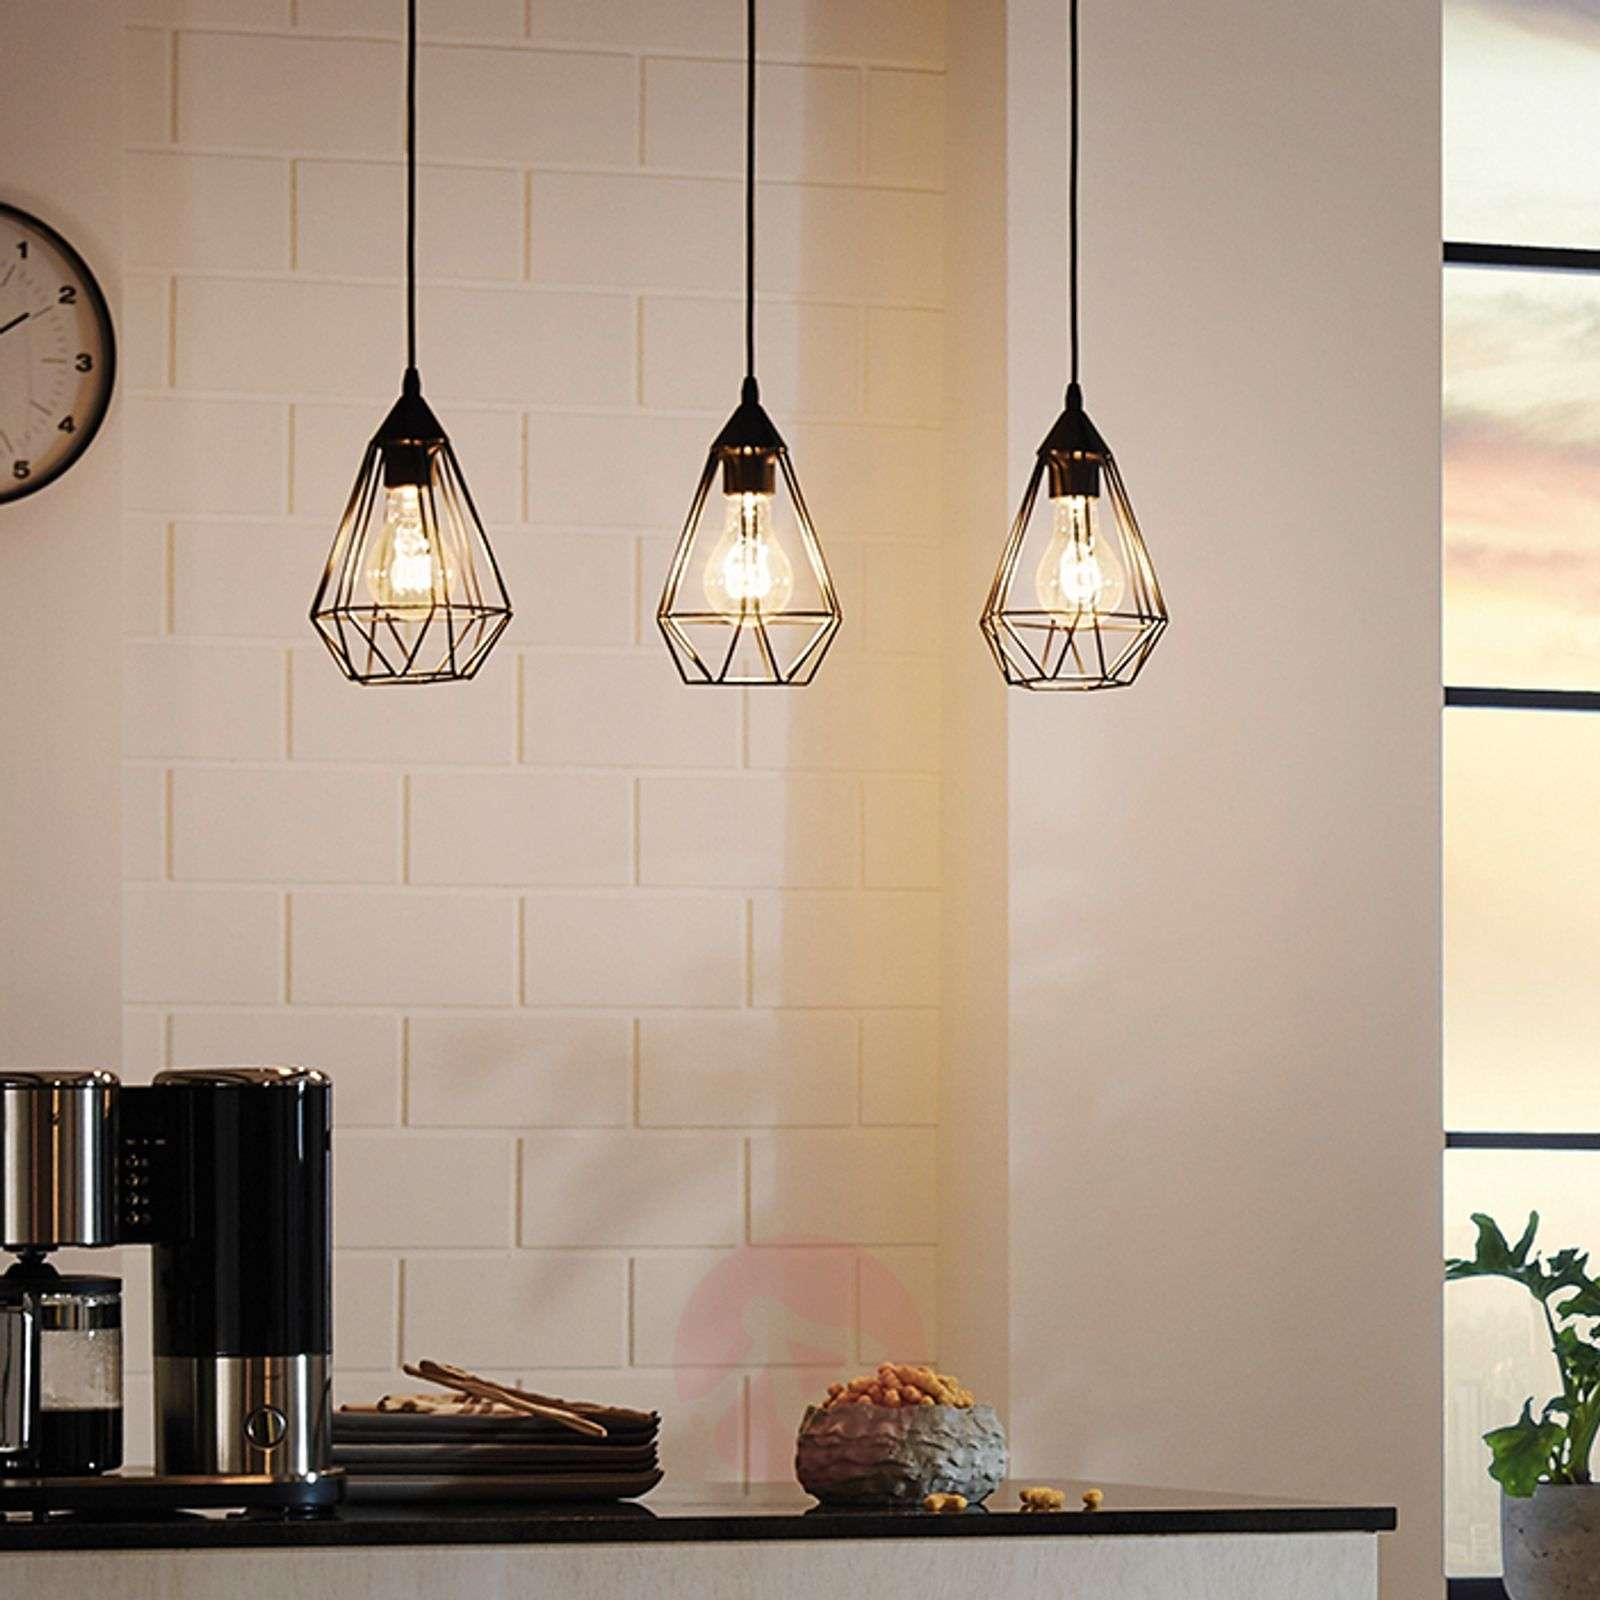 Tarbes Style Lampes Vintage Suspension 3 mOv8PyNn0w